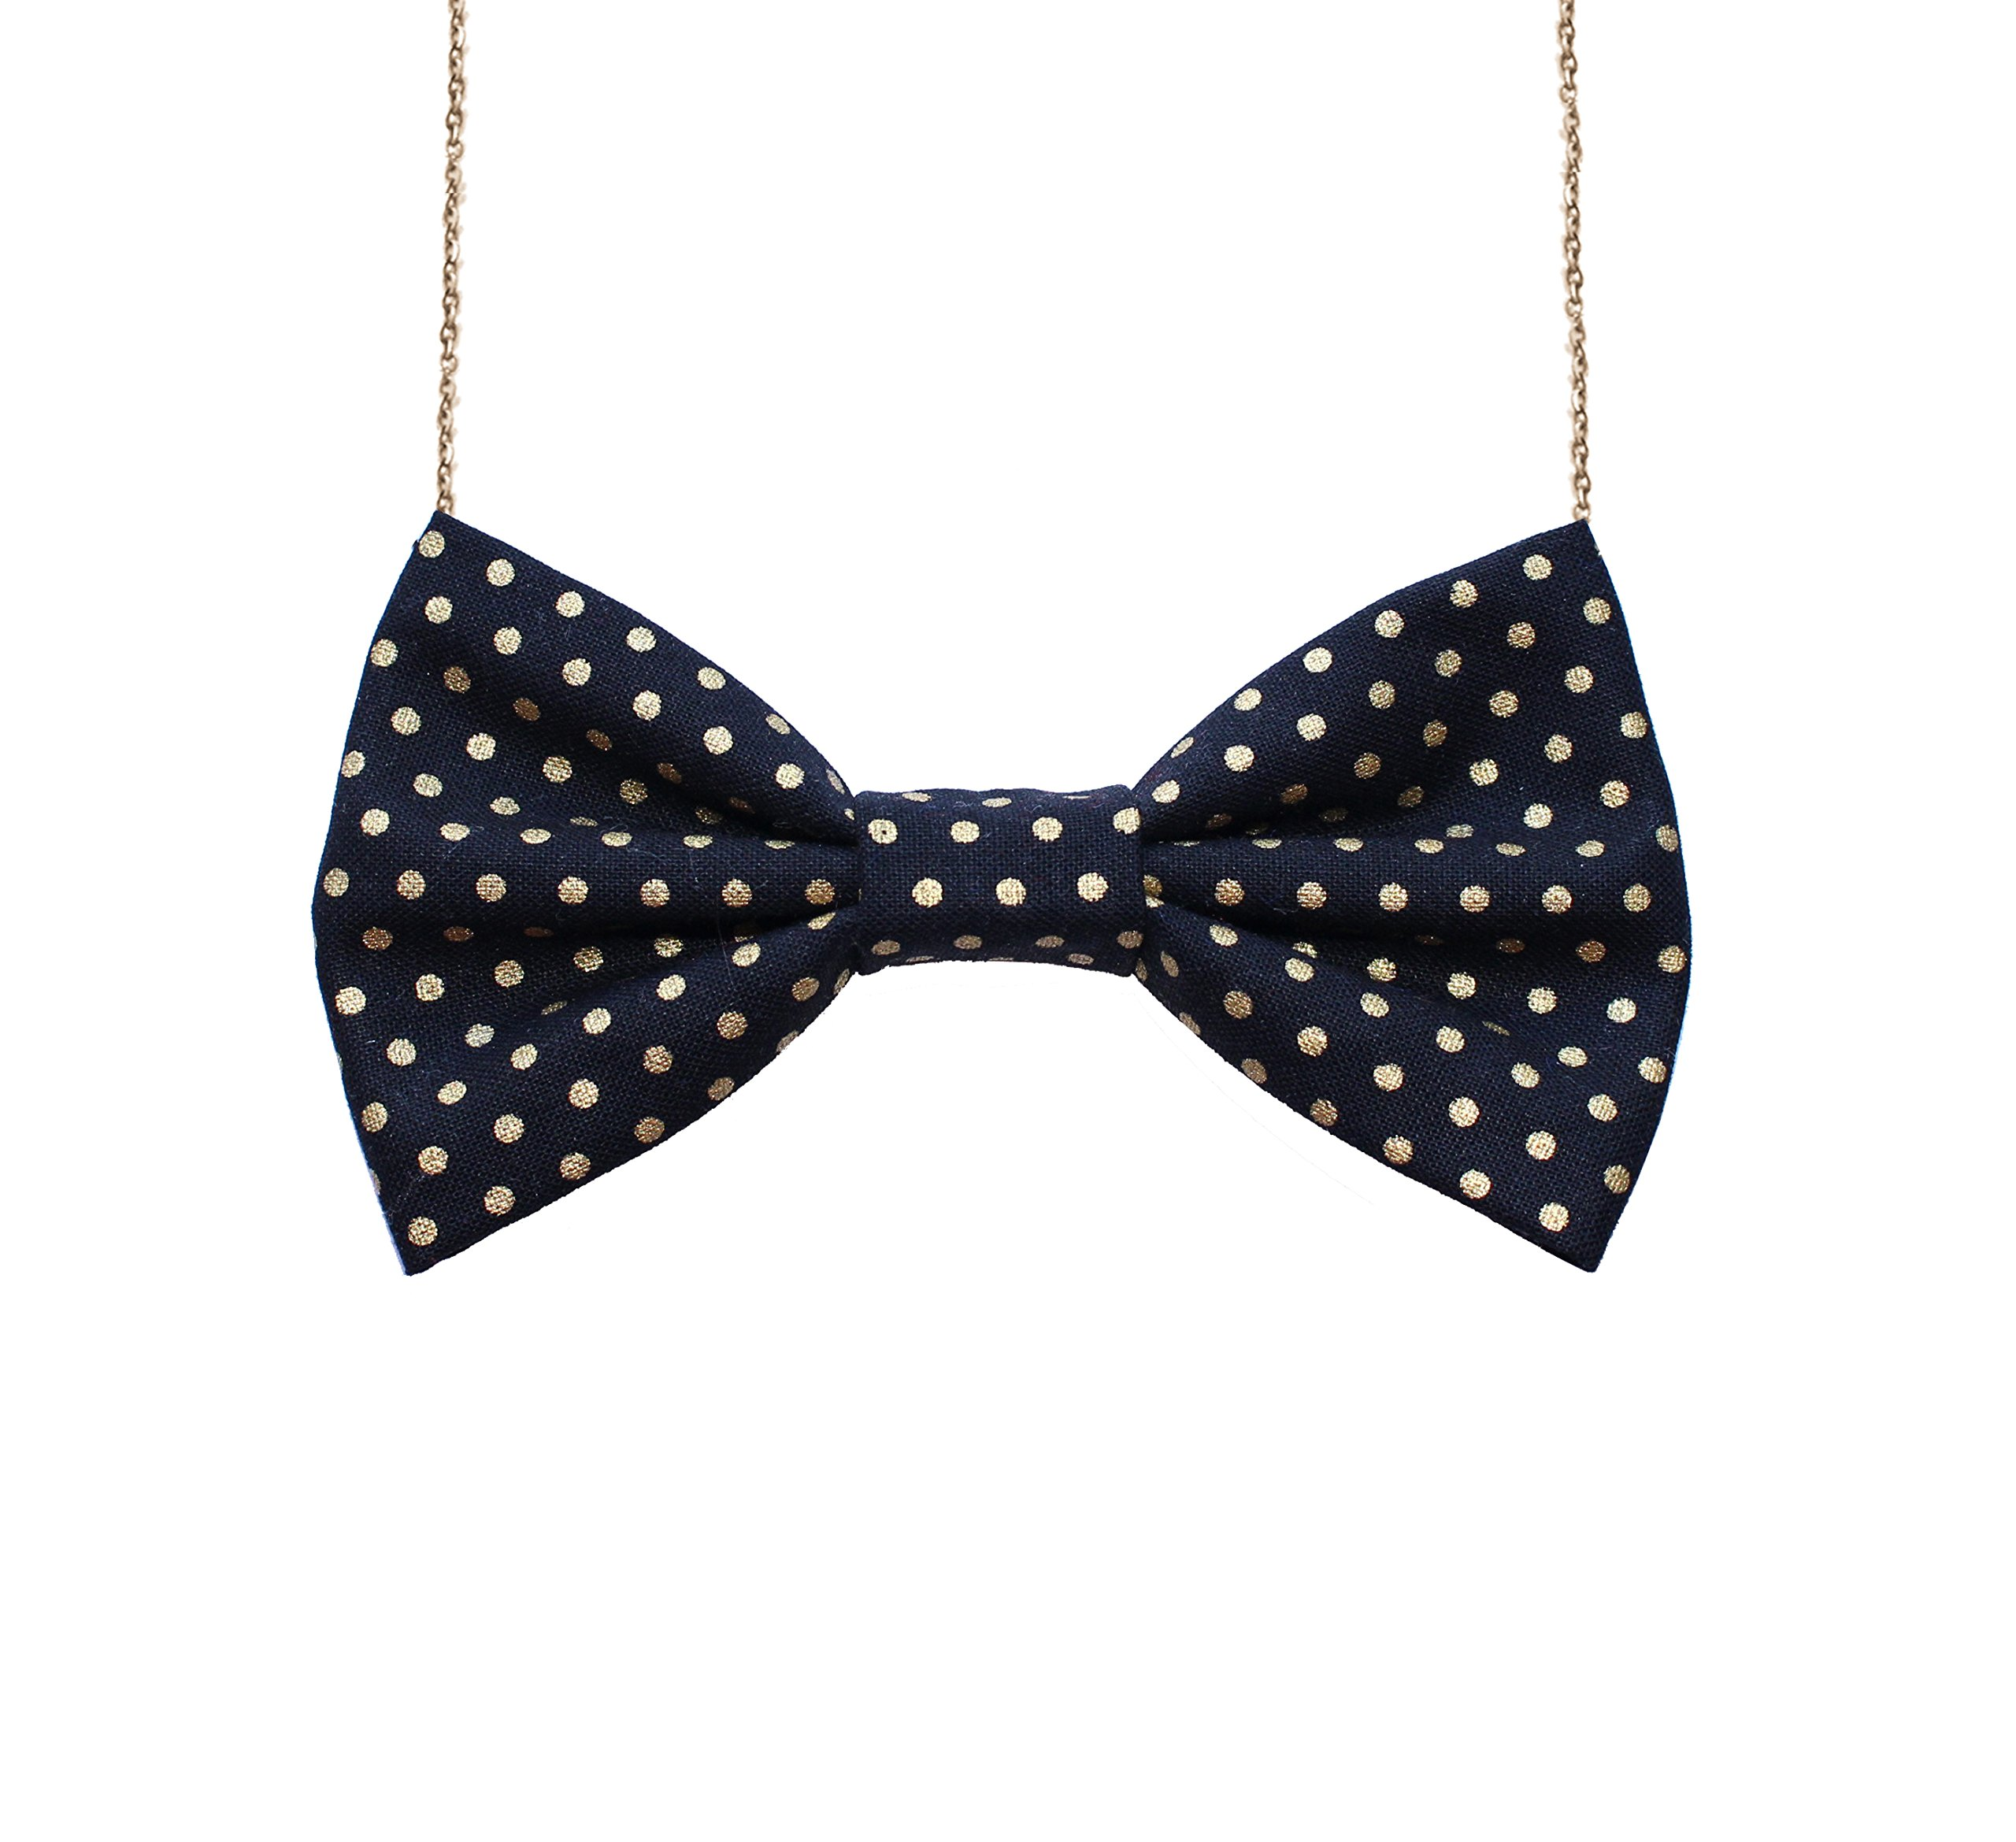 Bow Tie Necklace Classic Black Matte Adjustable Chain 16-20'' Pre-tied Accessory Made in USA Cotton #2 (4.5'' x 2.5'', Black Golden Dot)